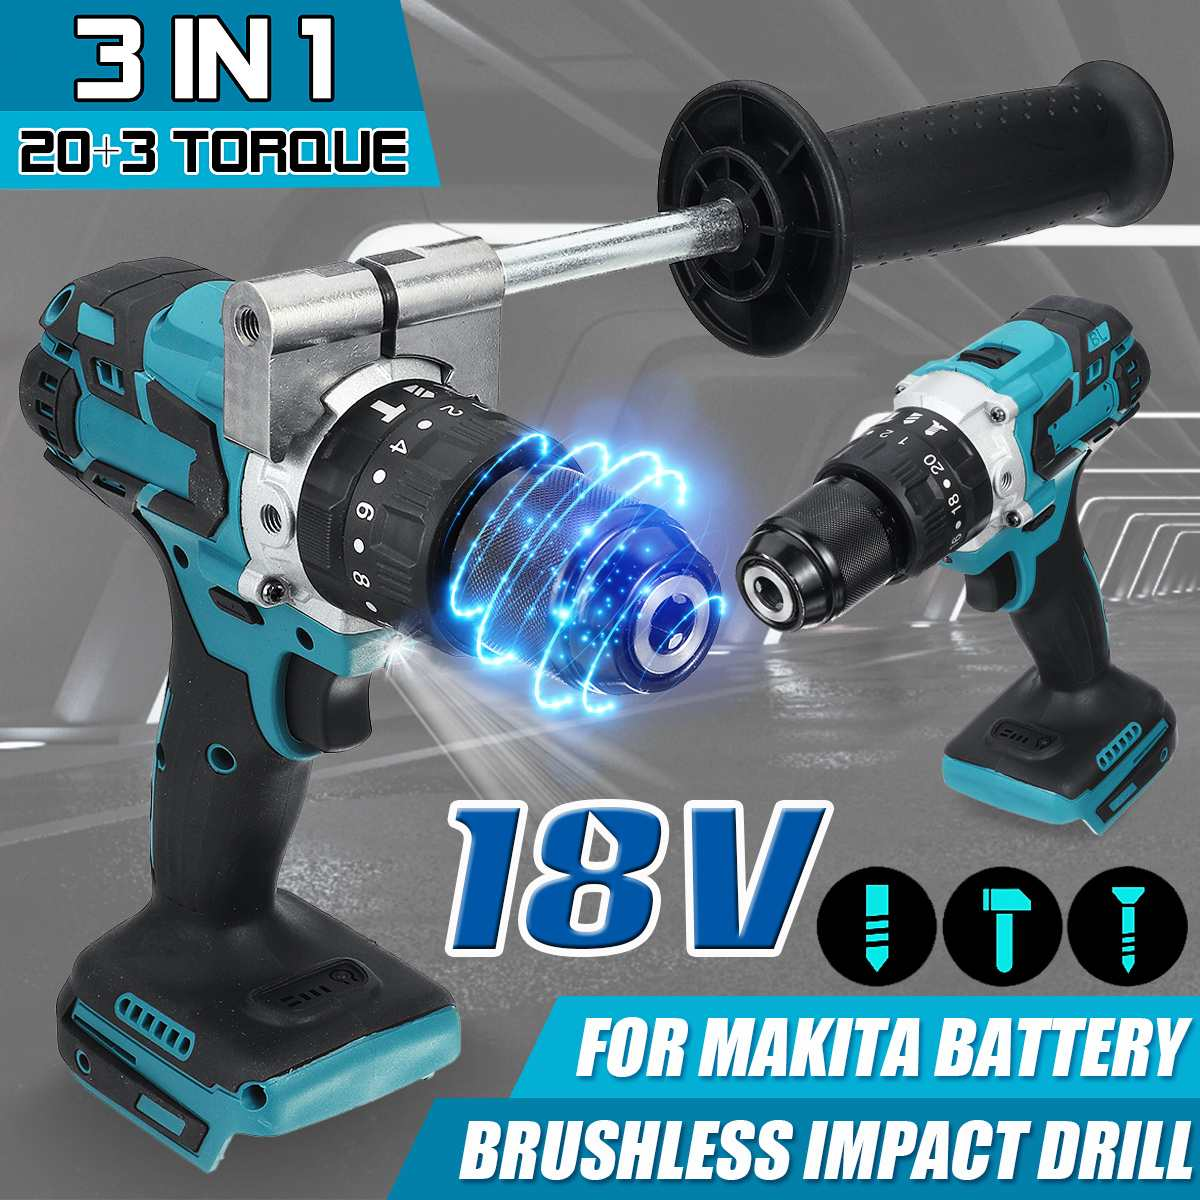 3 in 1 Brushless Electric Hammer Driver Drill with Handle 20+3 Torque Cordless Compact Impact Drill For Makita 18V Battery 3 in 1 13mm brushless electric hammer drill electric screwdriver 20 3 torque cordless impact drill for makita 18v battery